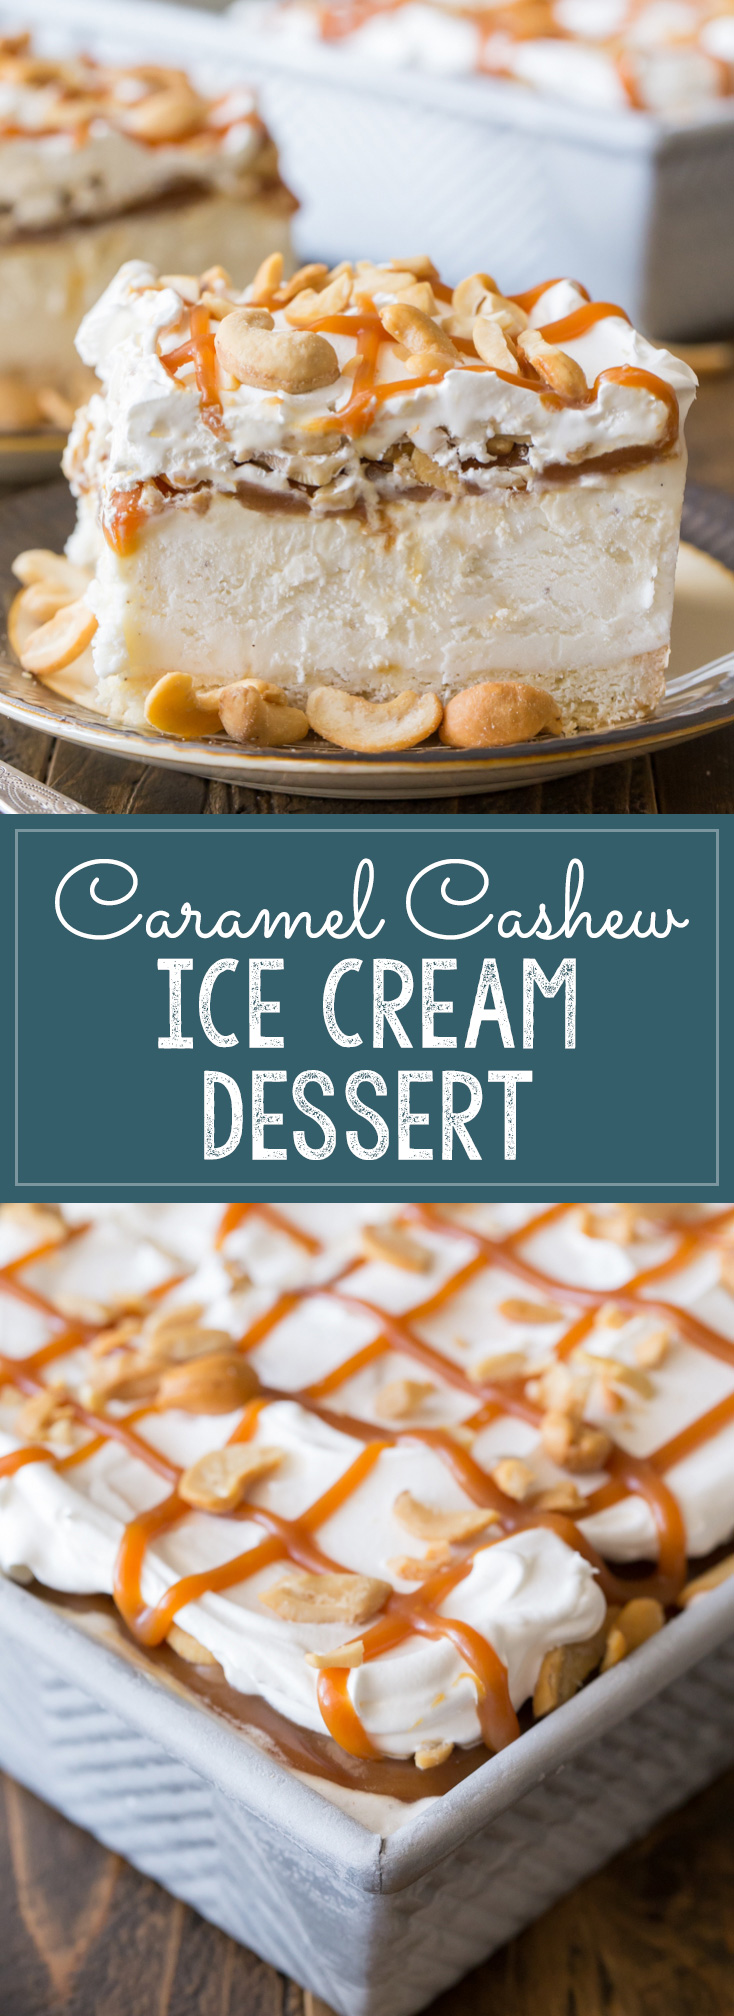 Creamy vanilla ice cream on a shortbread cookie crust, topped with homemade caramel sauce and cashews of course!